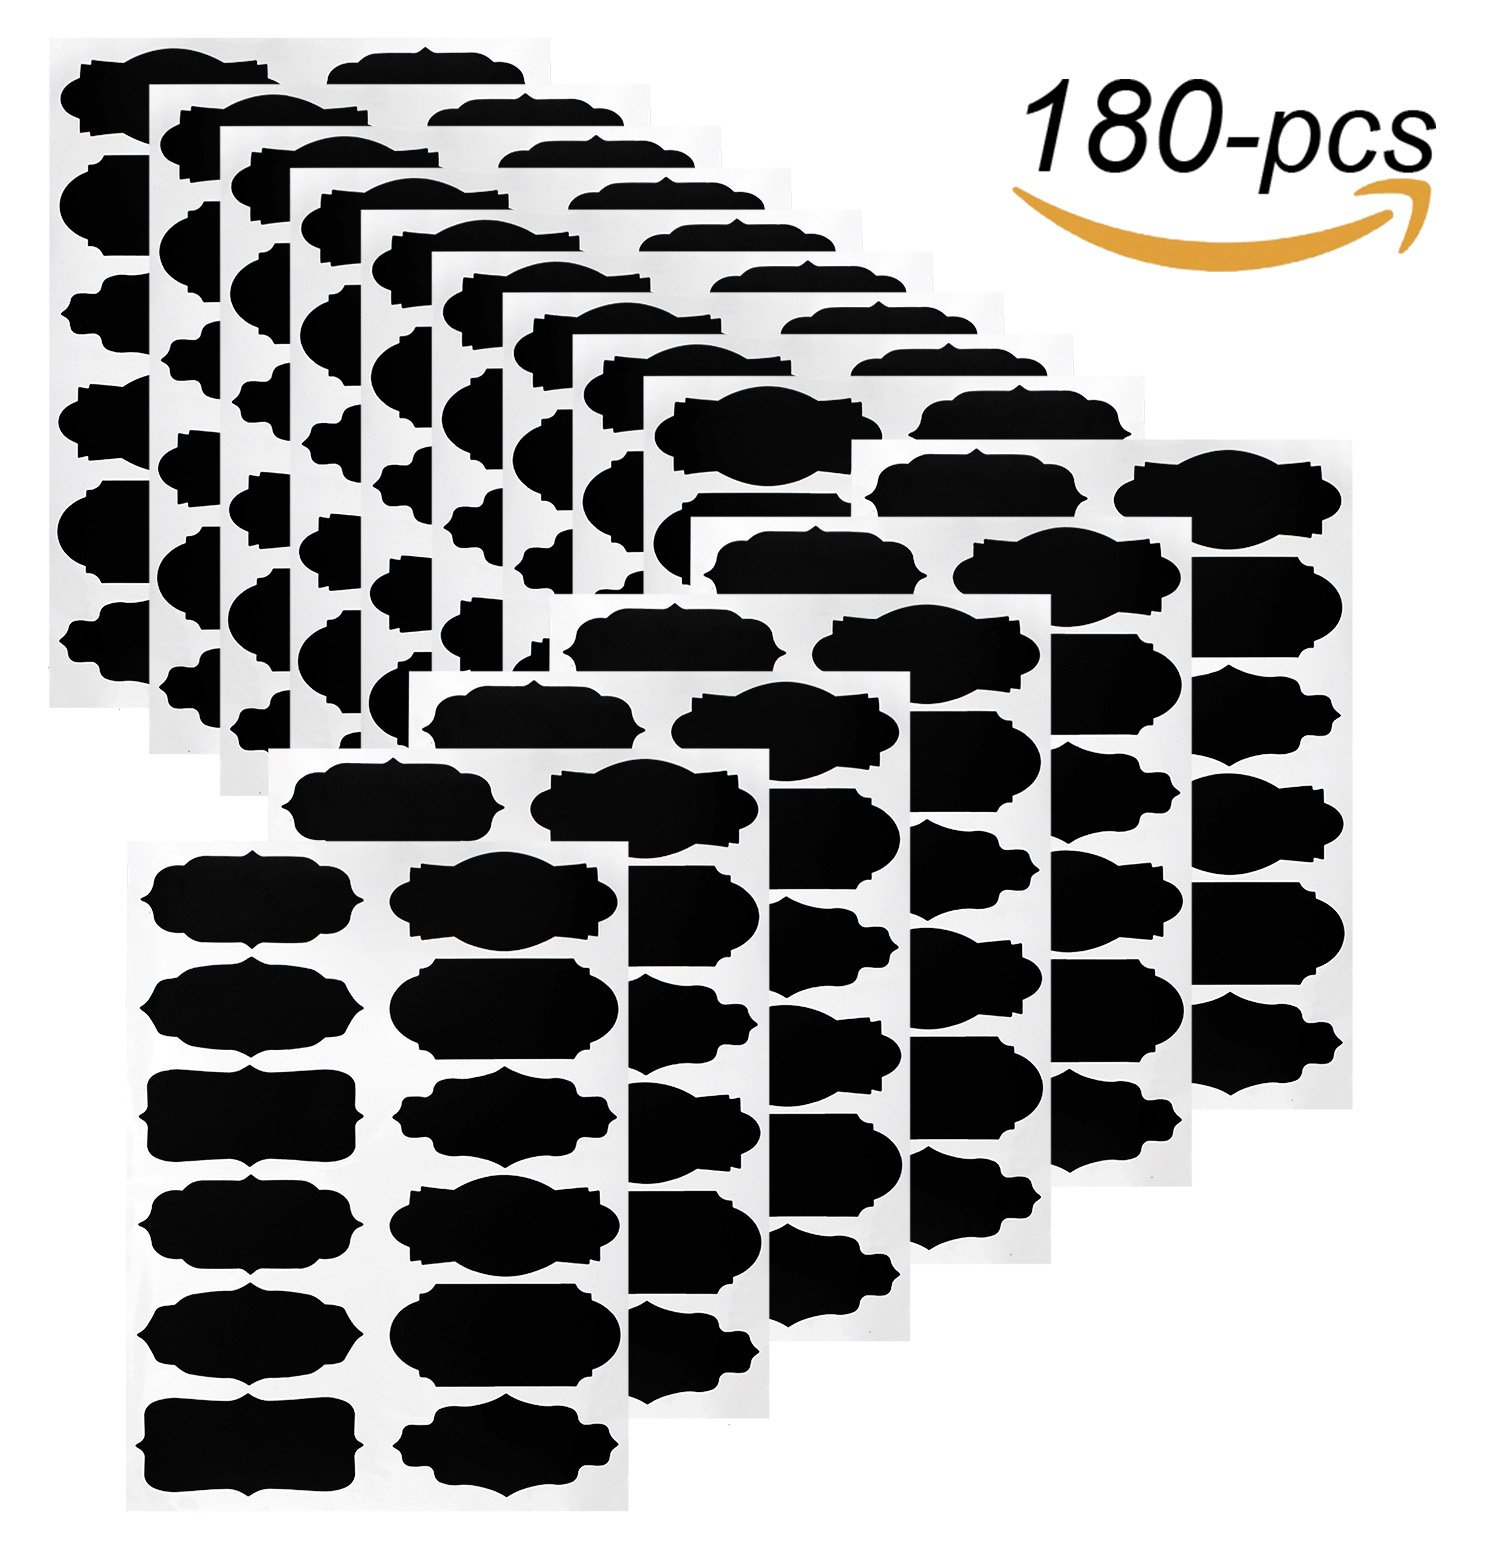 Chalkboard Labels,180pcs Waterproof Reusable Chalkboard Stickers Erasable for Labeling Mason Jars,Pantry,Craft Rooms & Closets-Organize Your Home & Office